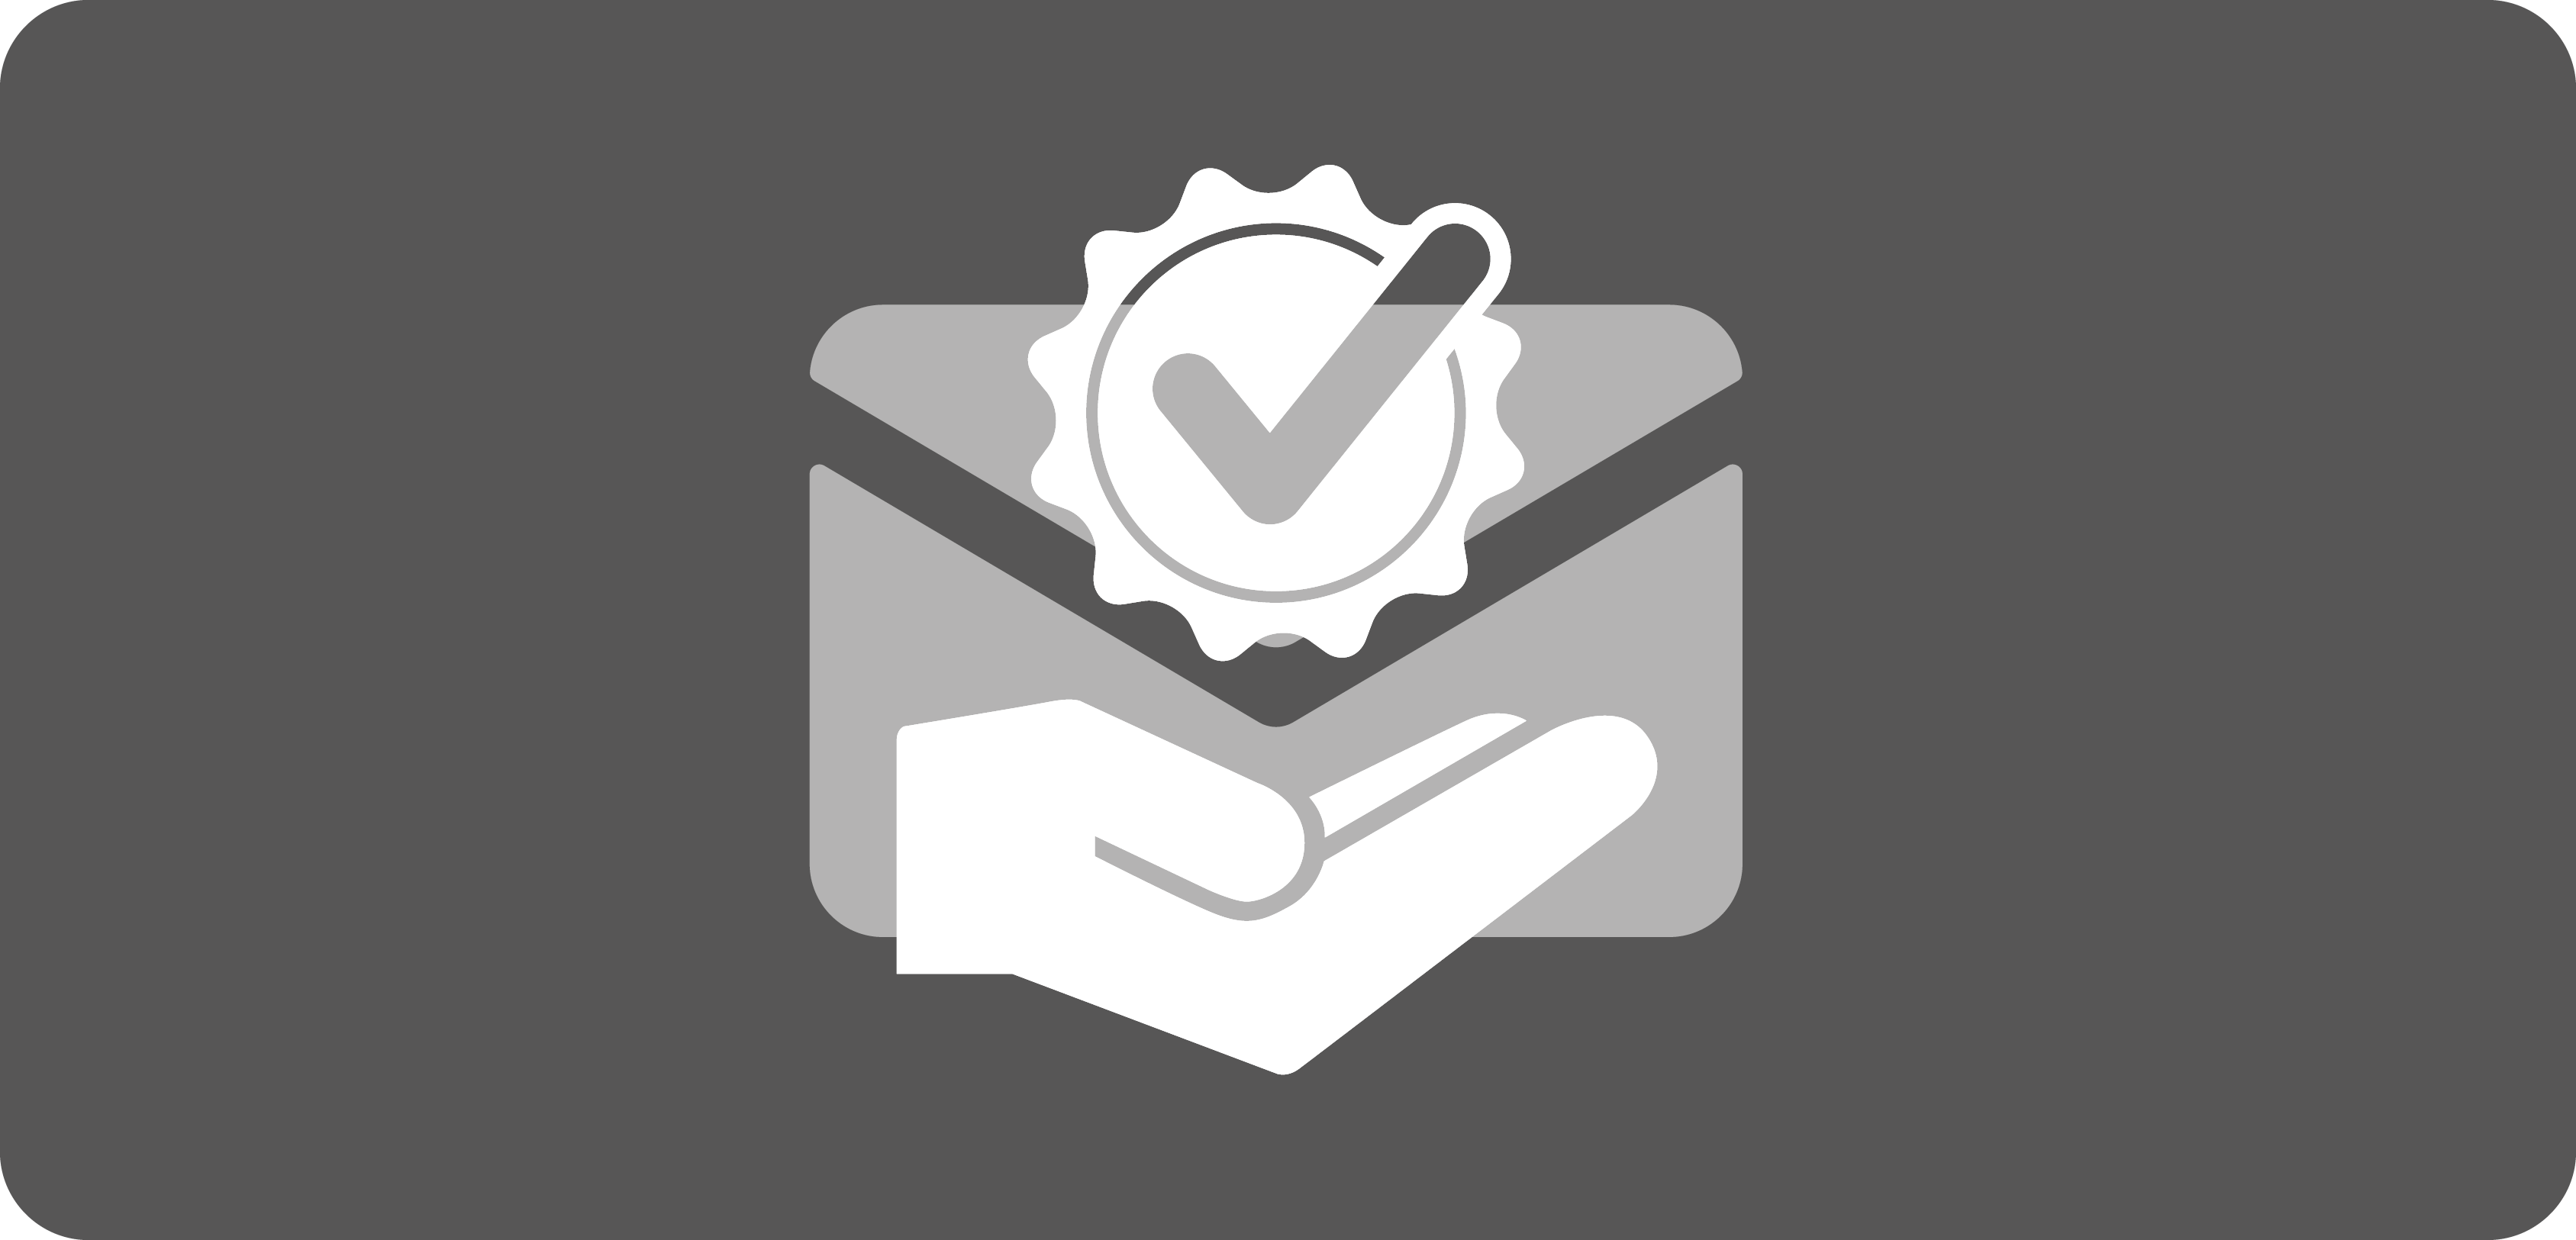 White award icon on grey background